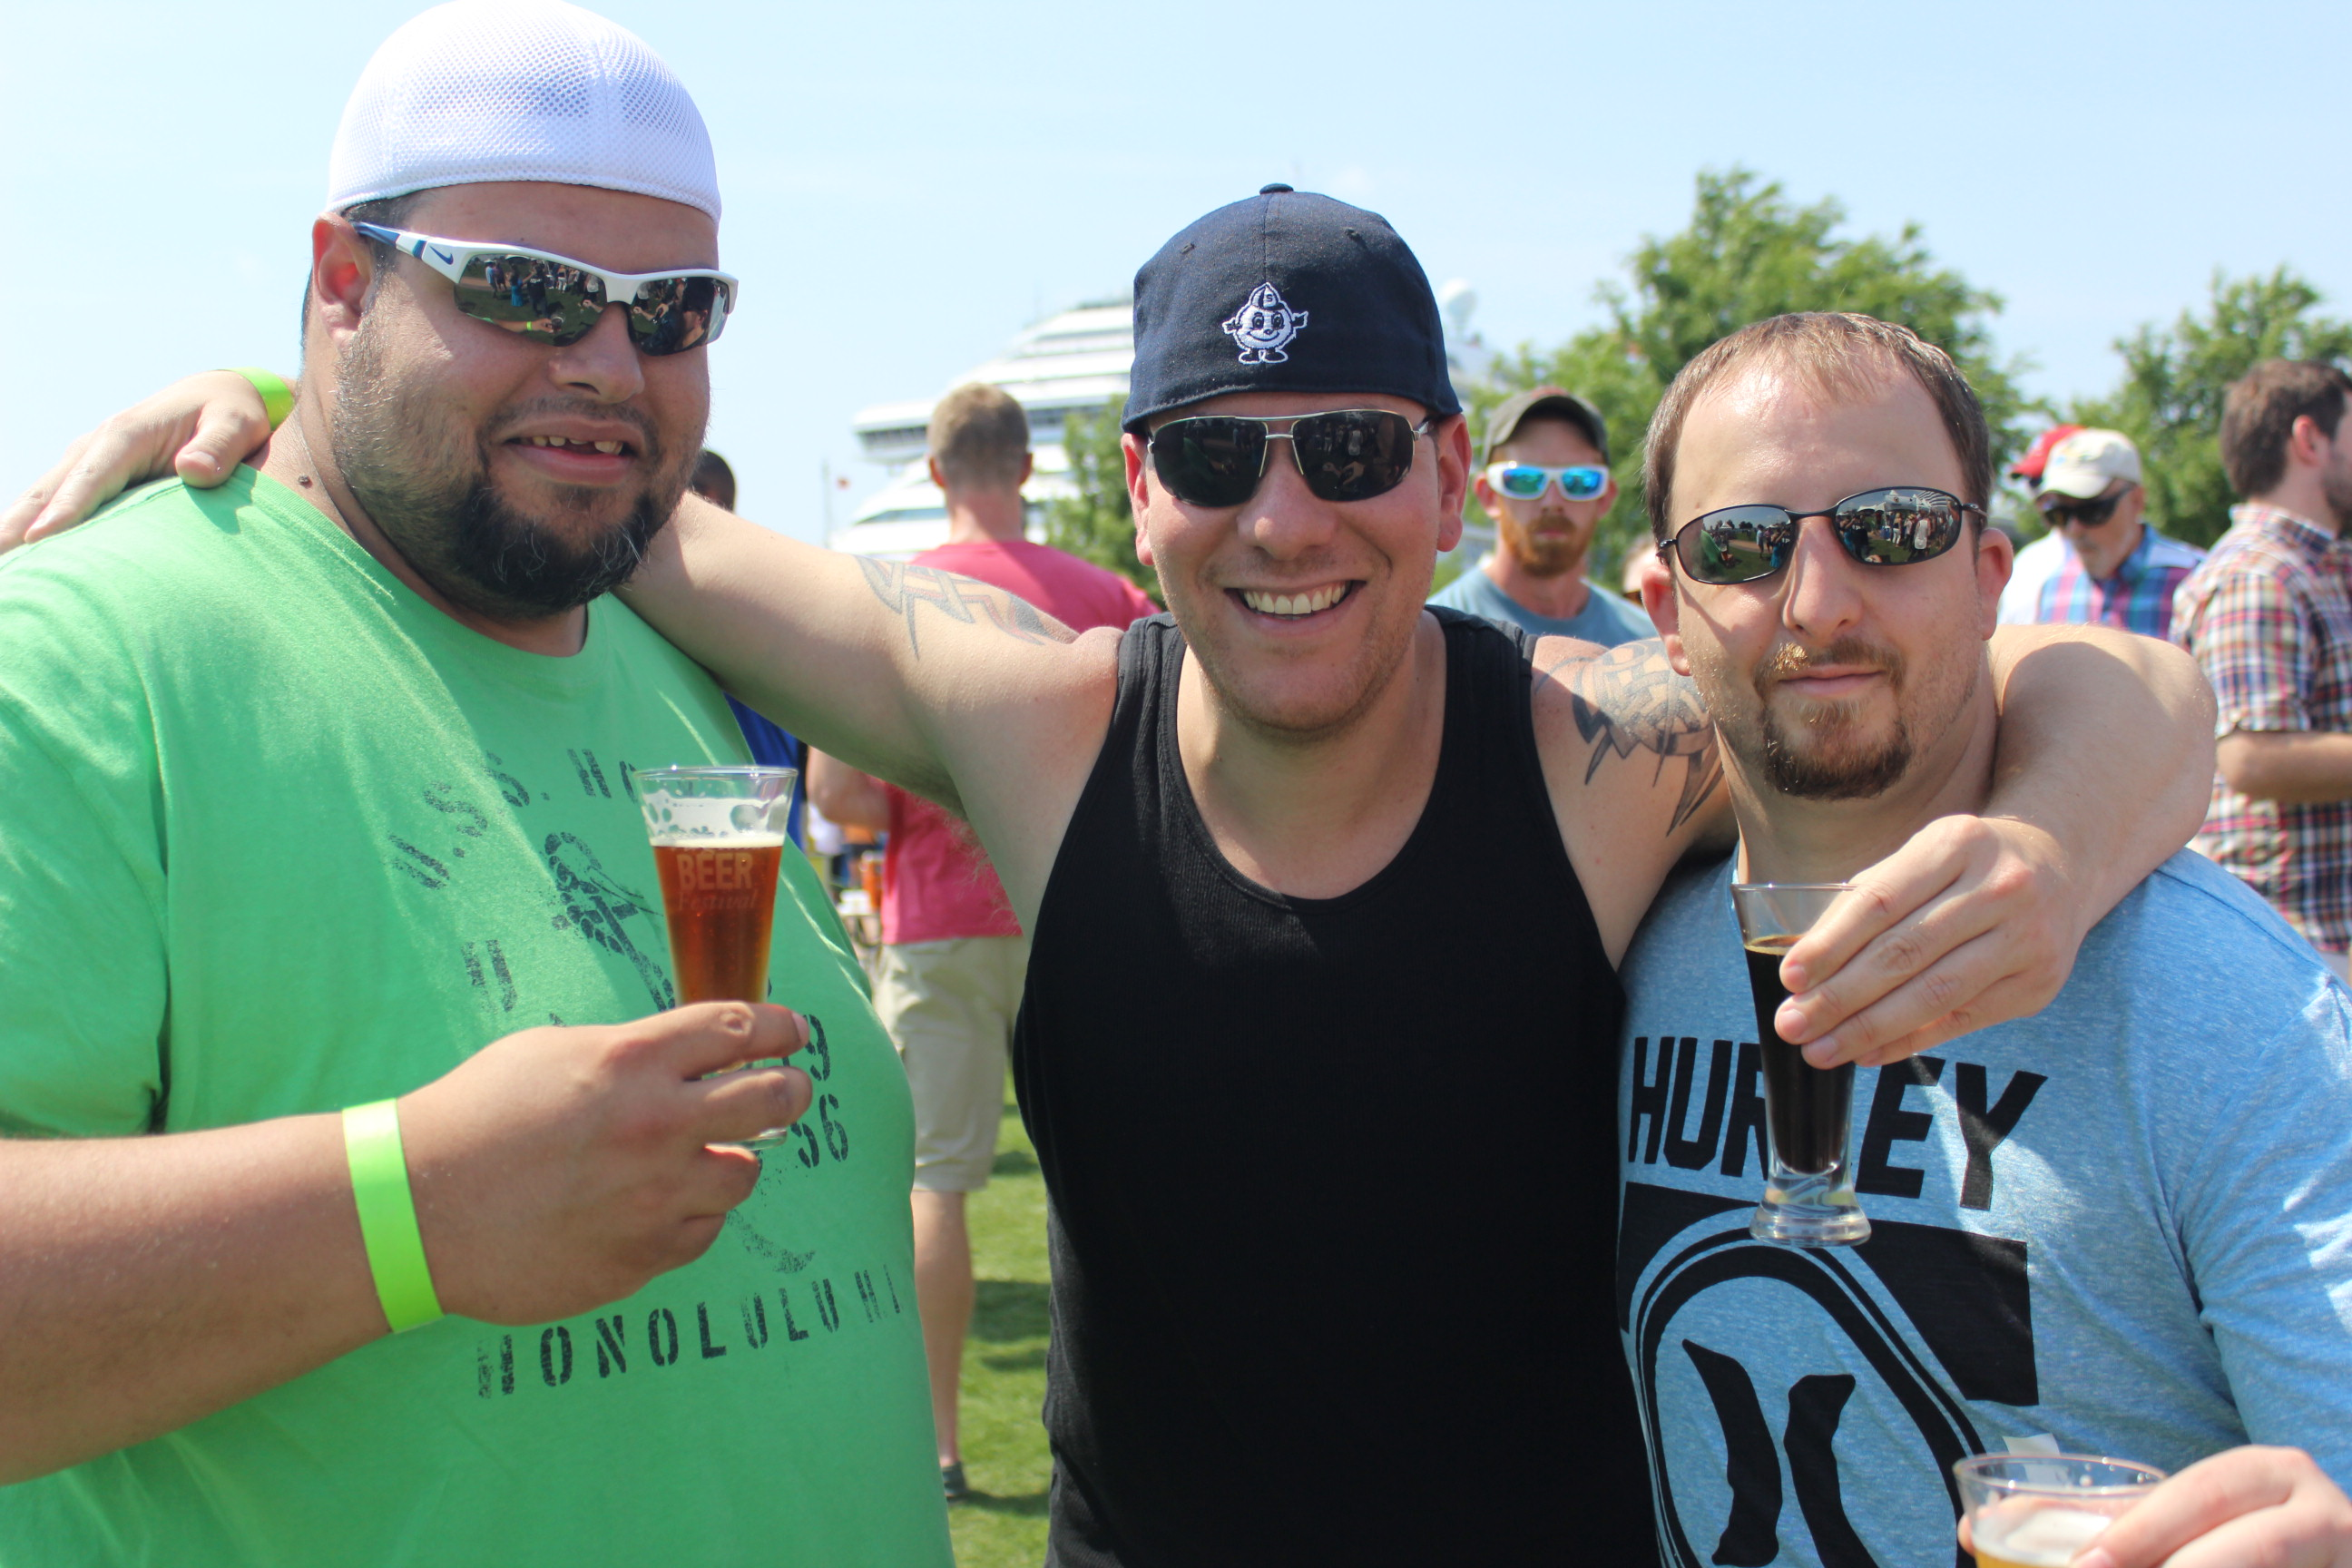 Virginia Beer Festival – May 2015